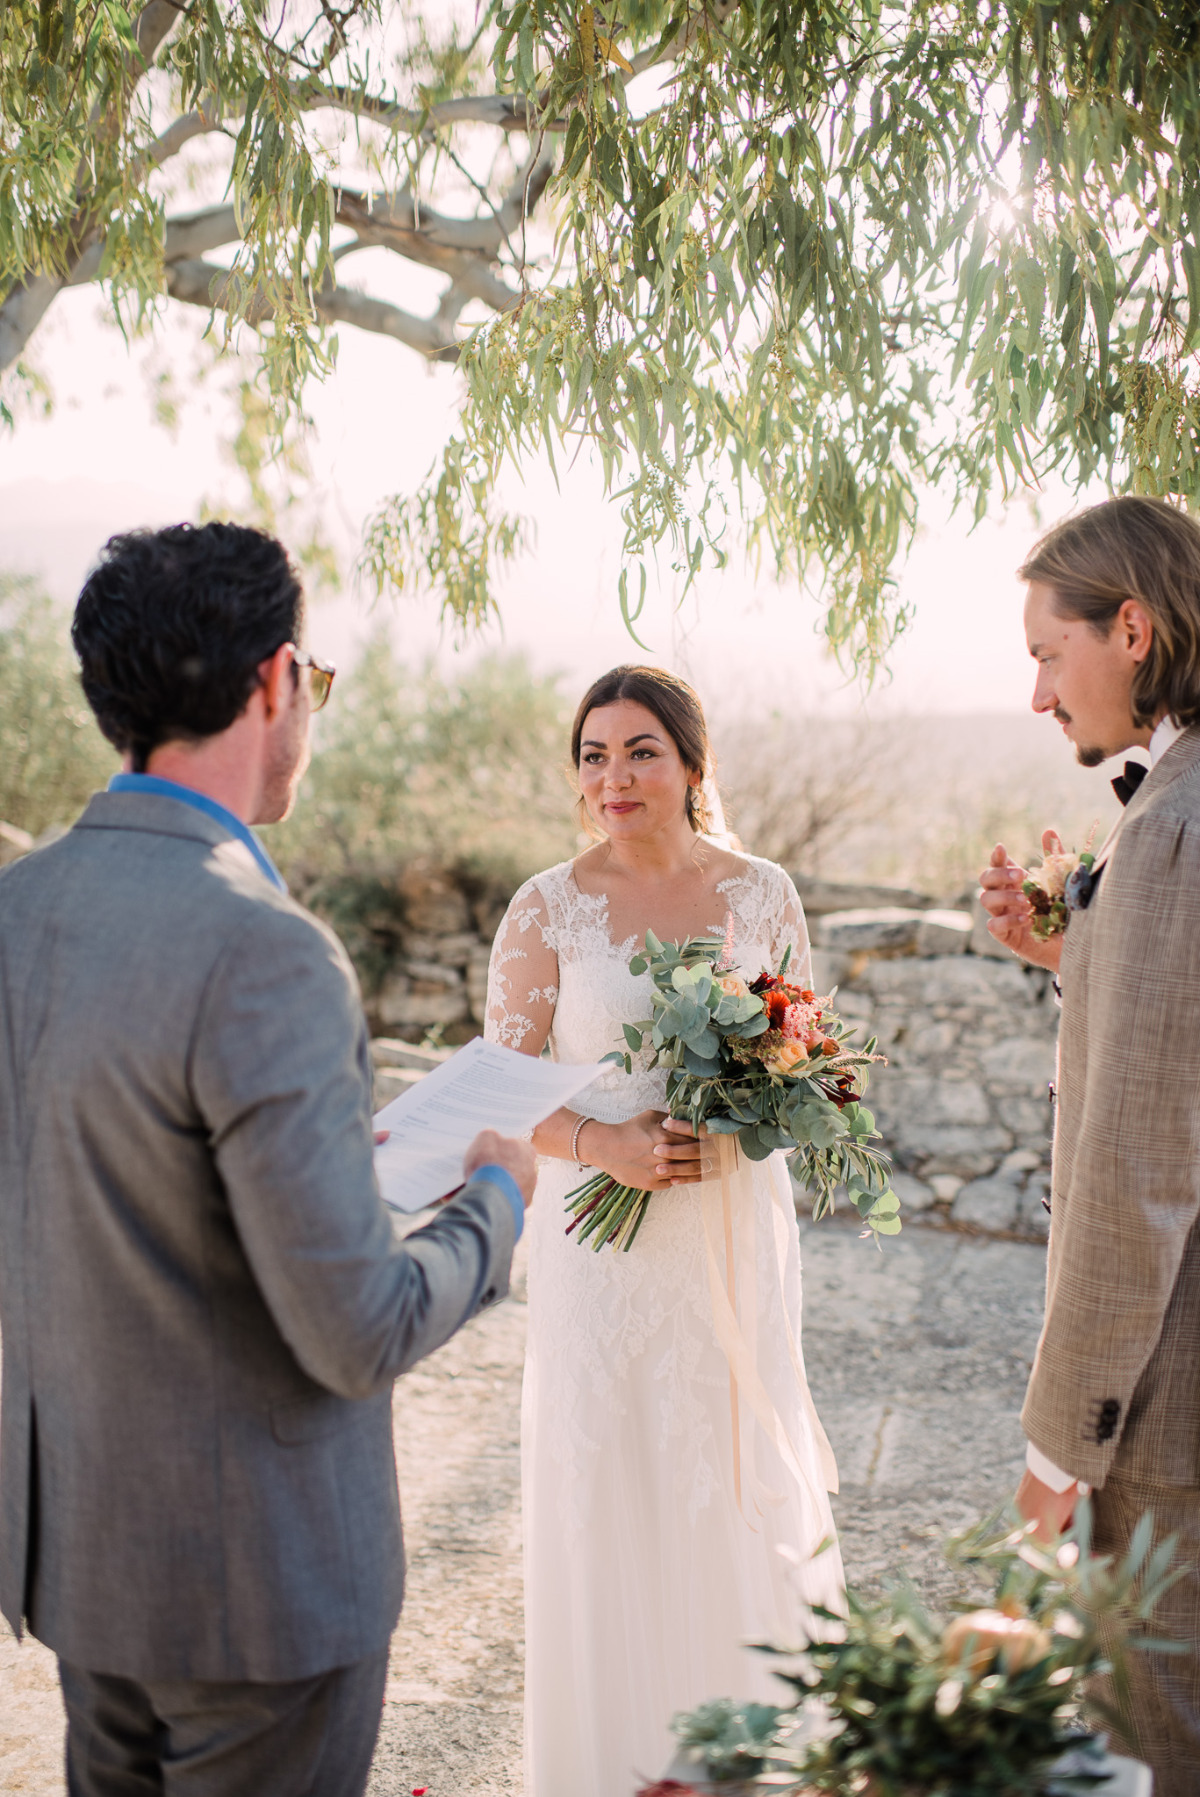 Rustic Intimate Elopement in Crete Planned in Just 48 hours